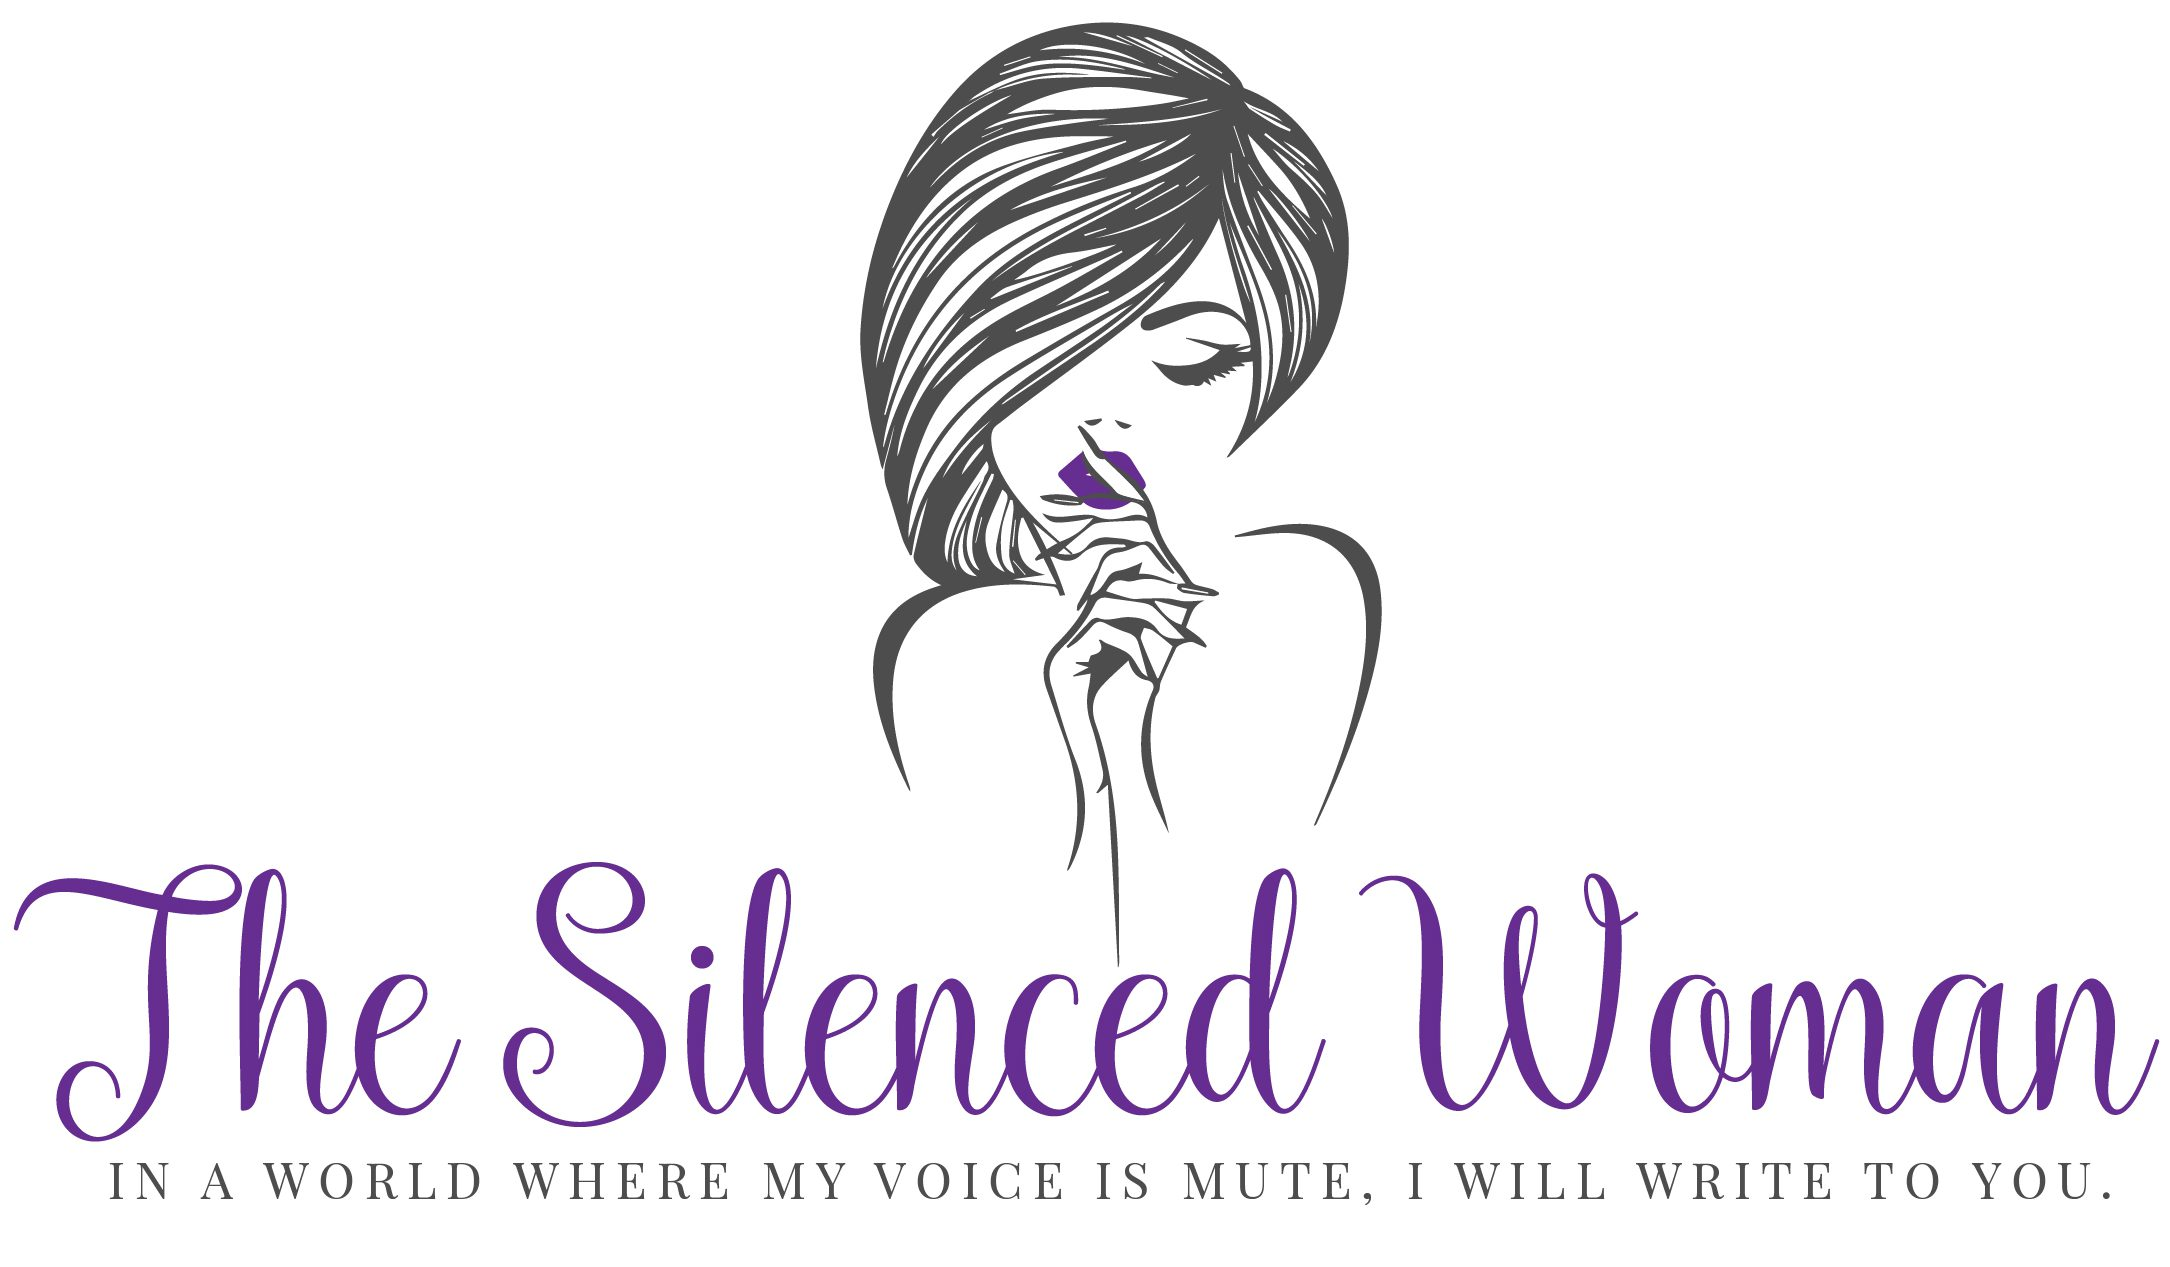 The Silenced Woman